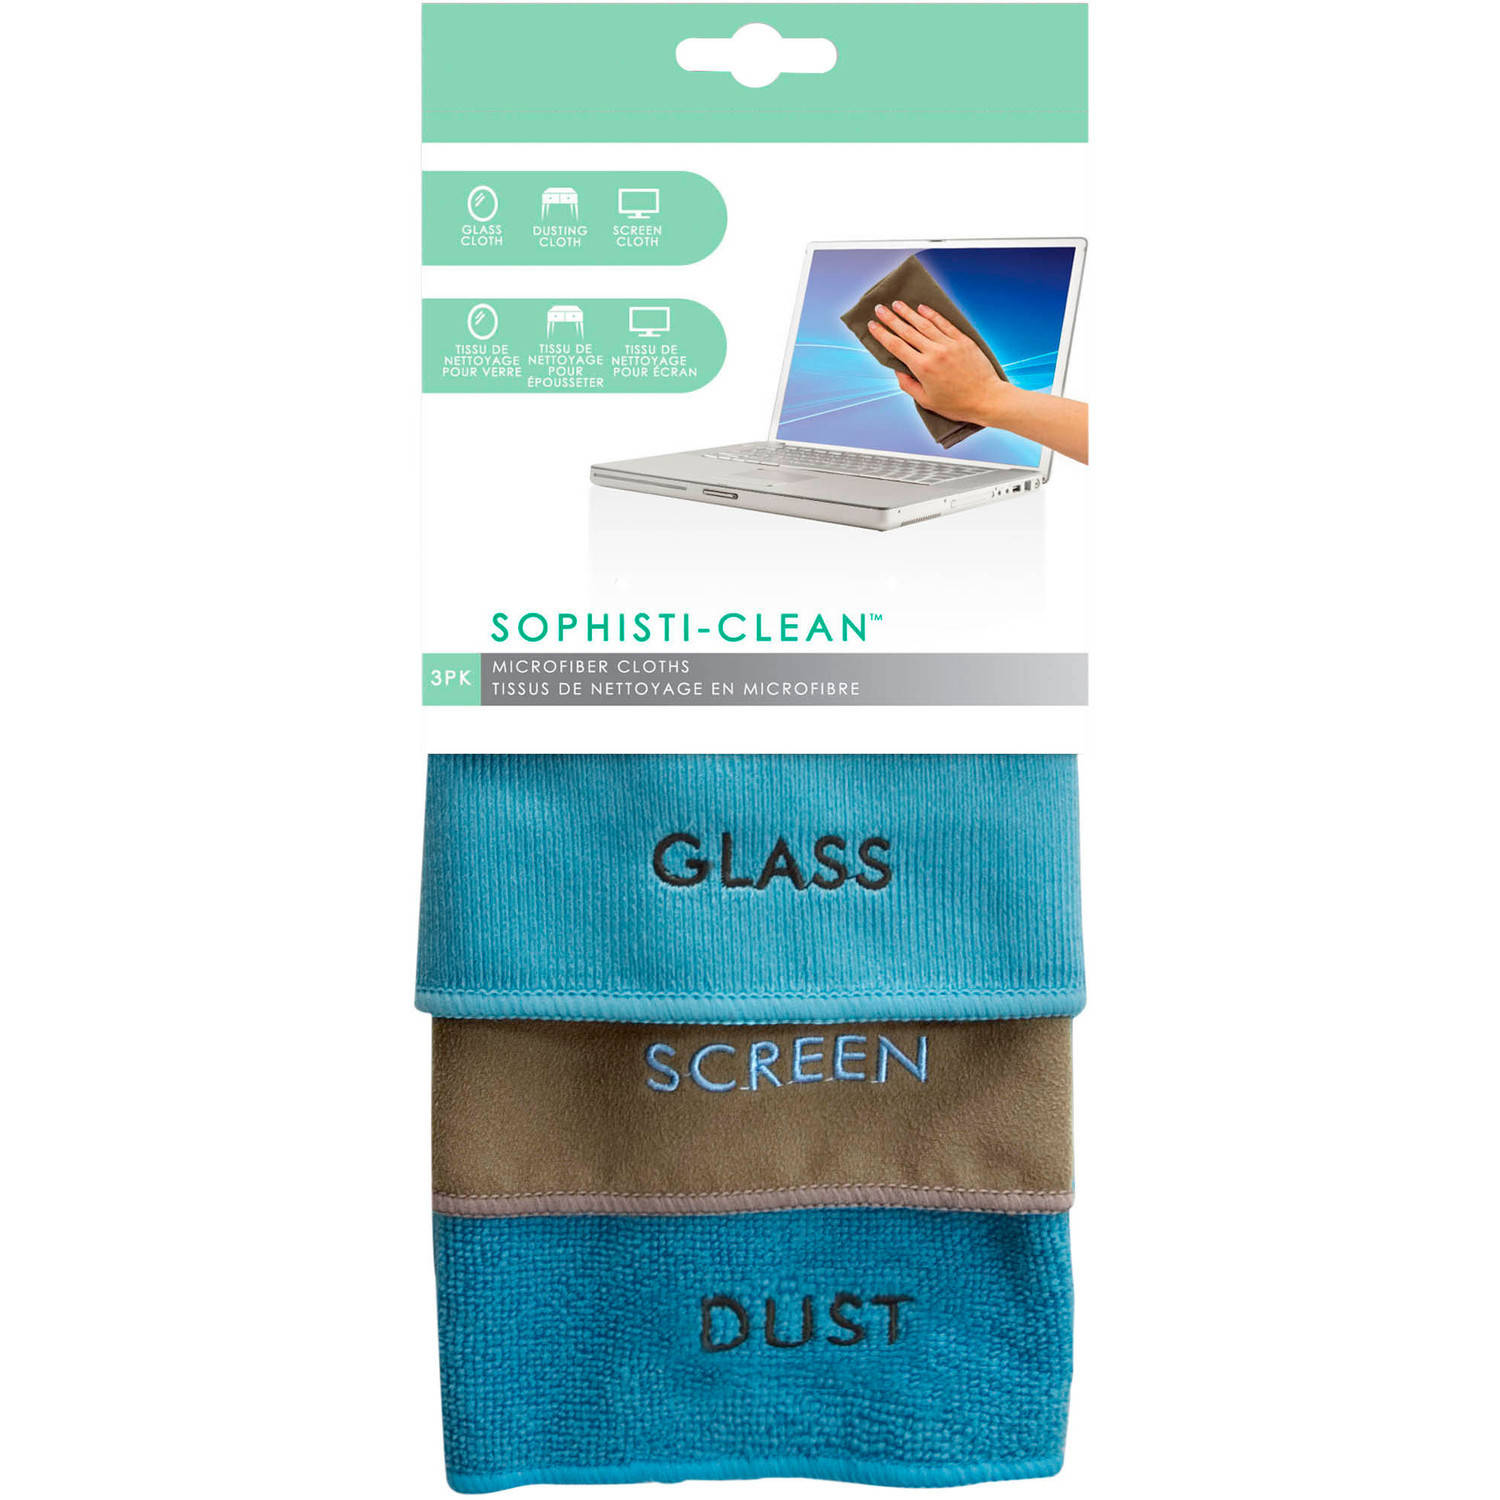 EVRI Sophisti-Clean Microfiber Cleaning Cloths, 3 count